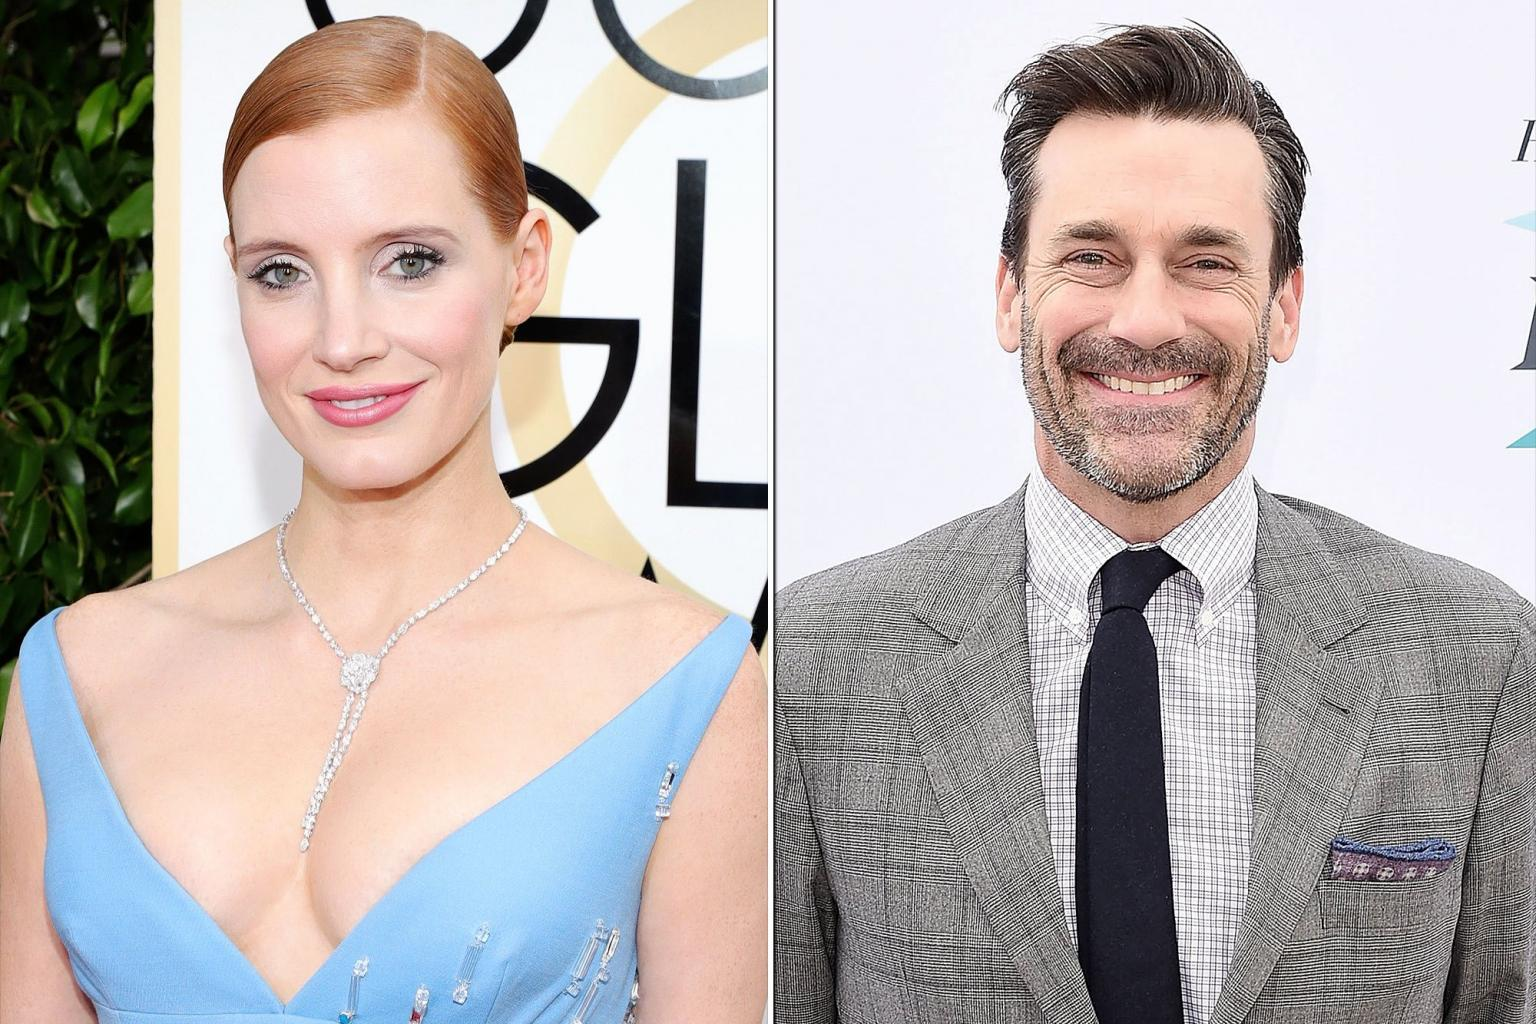 Jon Hamm and Jessica Chastain to Present at 2017 Film Independent Spirit Awards